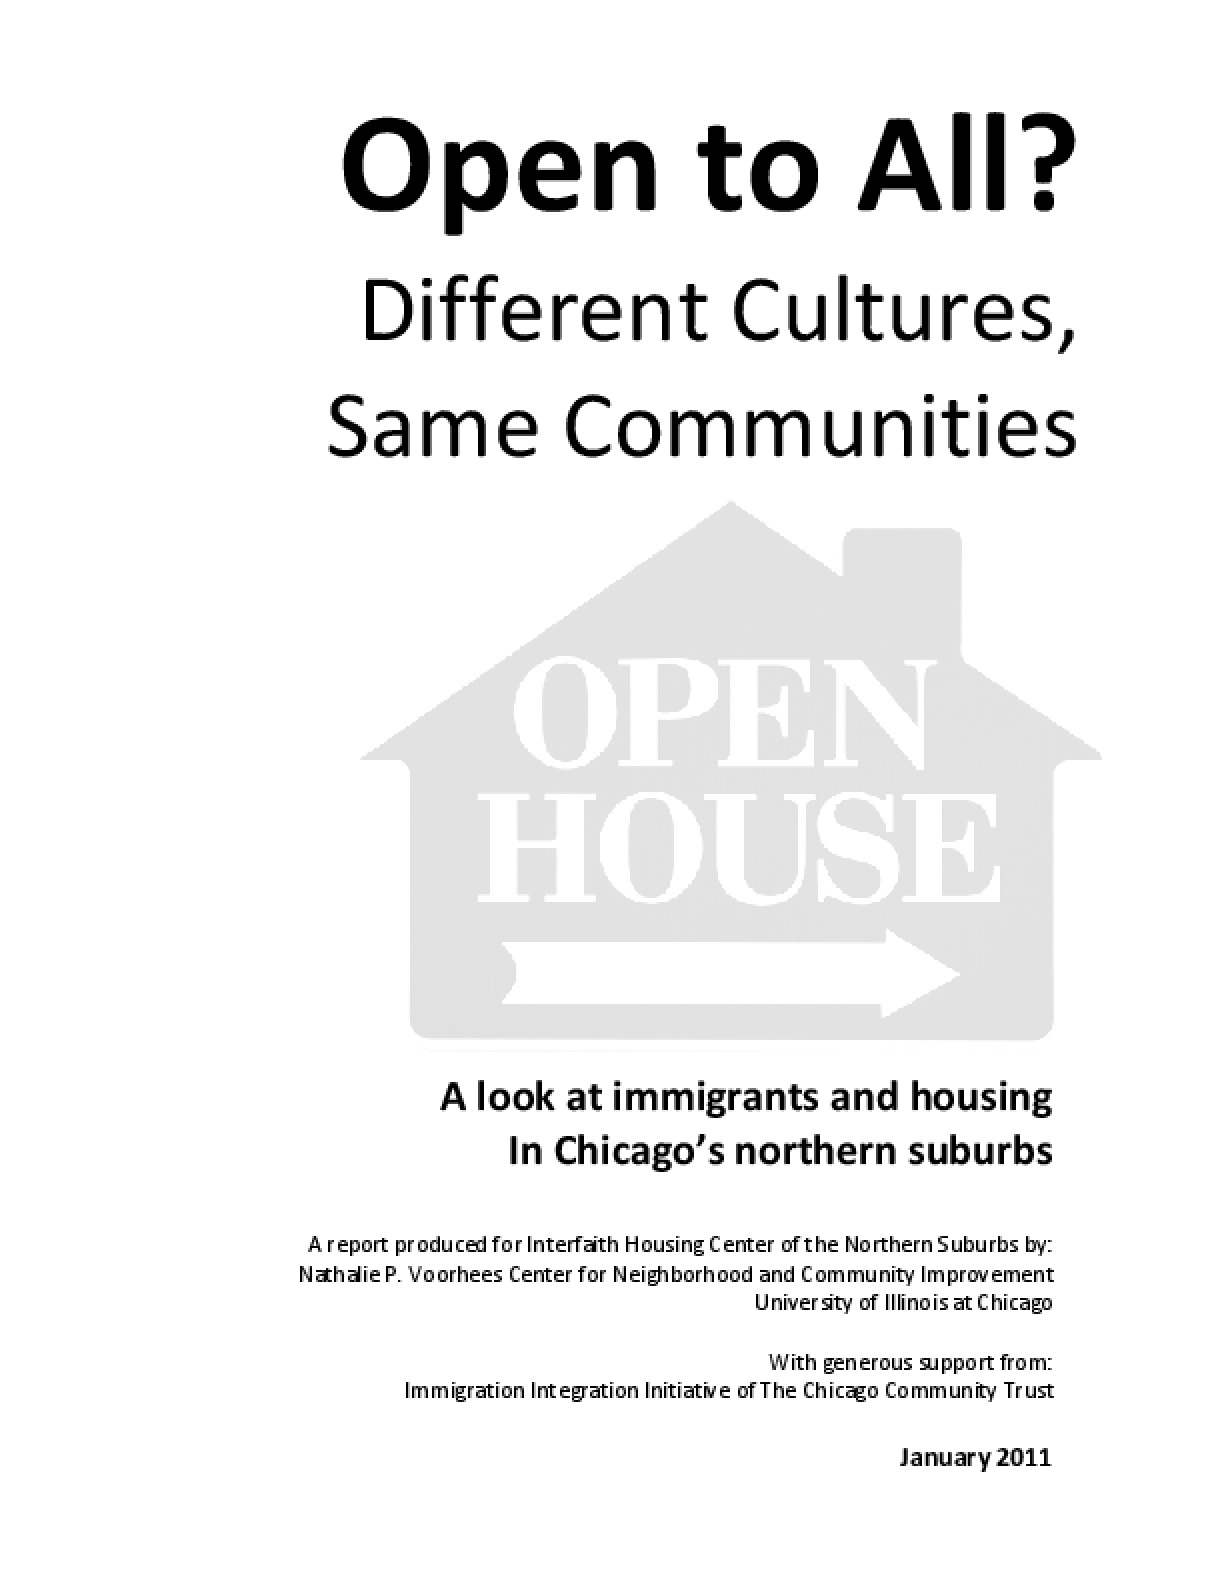 Open to All? Different Cultures, Same Communities